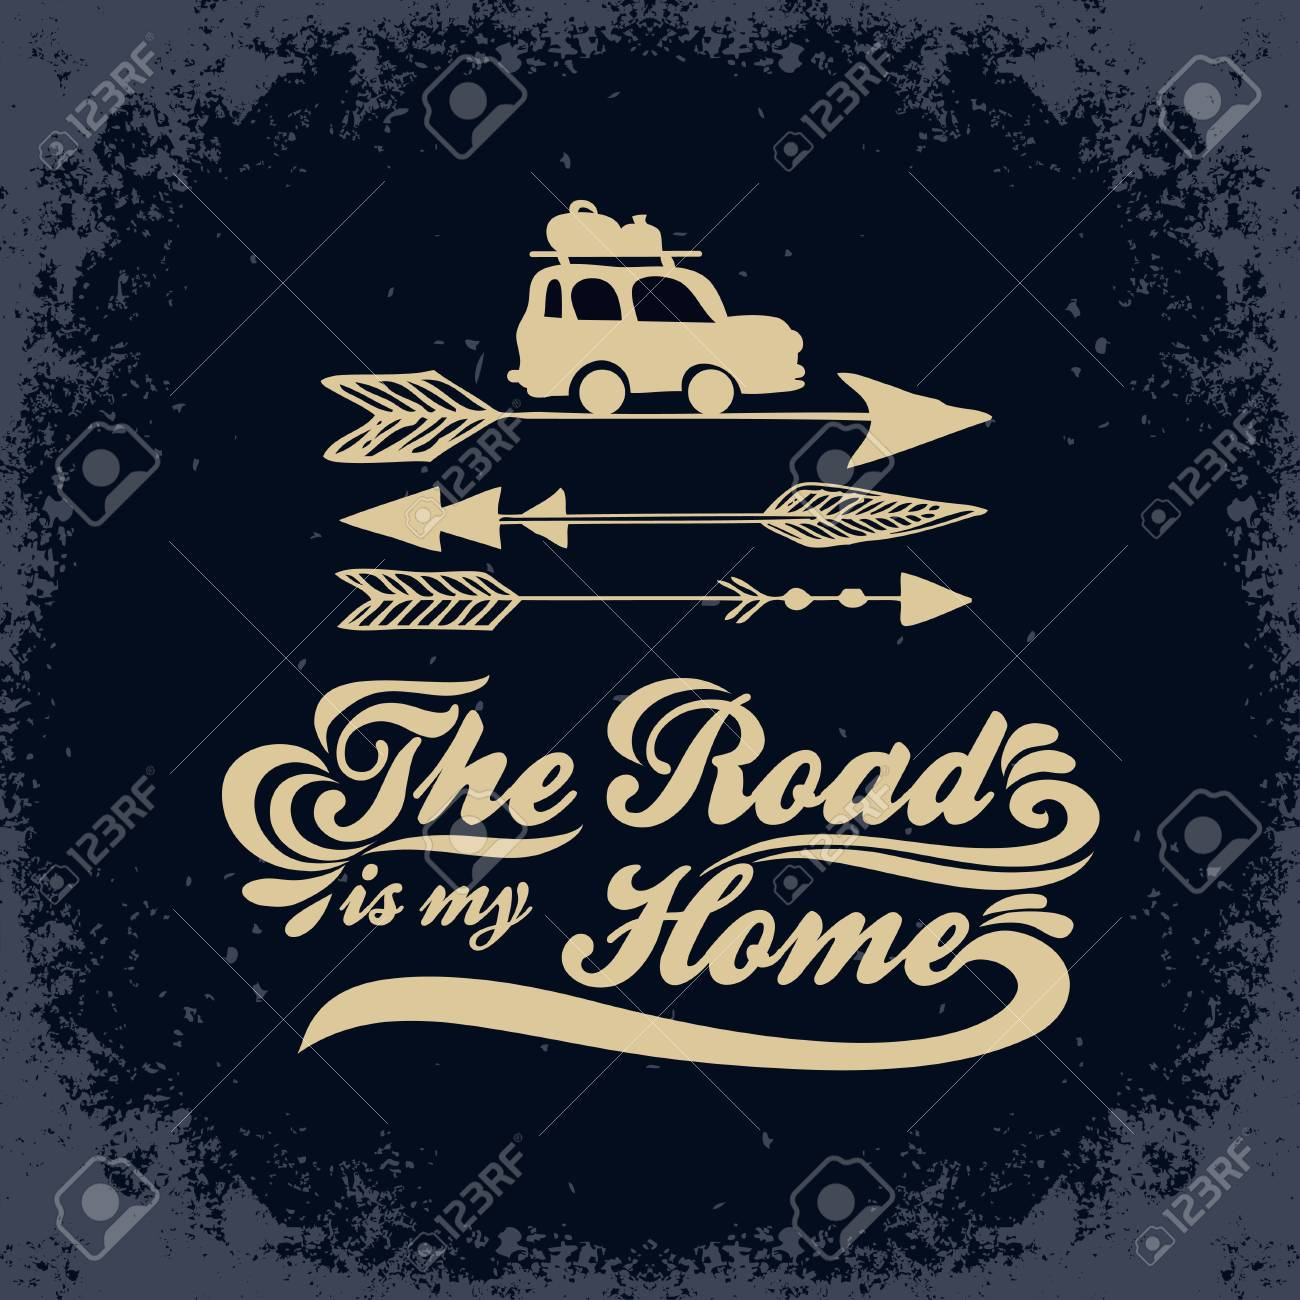 Inspiration Typography For T Shirt Print The Road Is My Home Royalty Free Cliparts Vectors And Stock Illustration Image 93077236